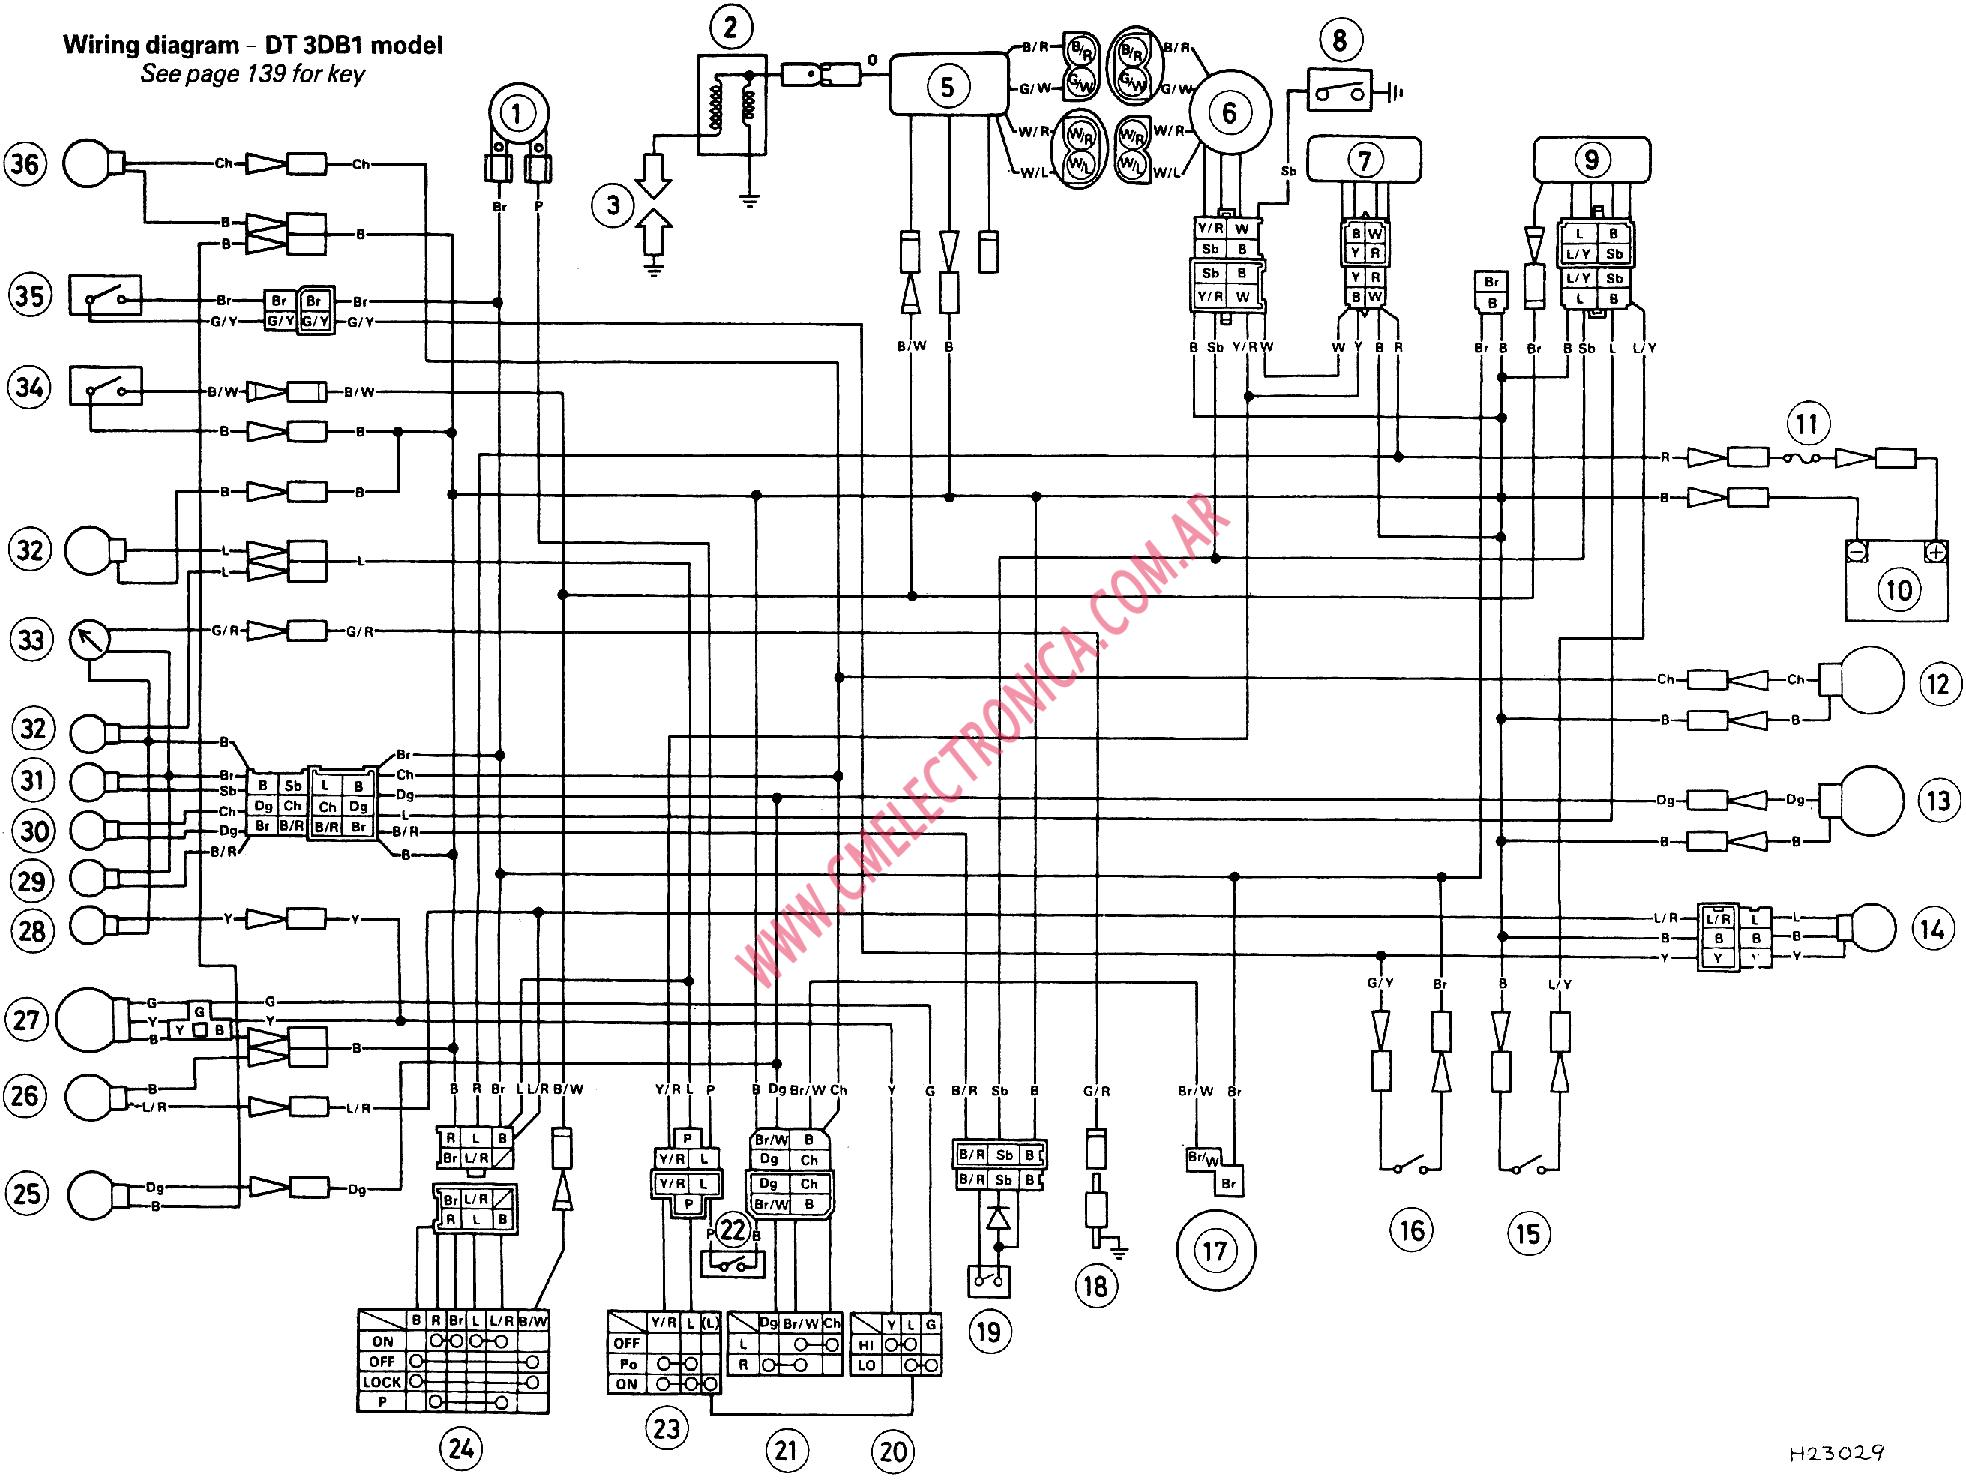 1980 Xs650 Wiring Diagram Layout Diagrams Simplified Harness 1979 Yamaha Gt80 Xt350 81 Problems